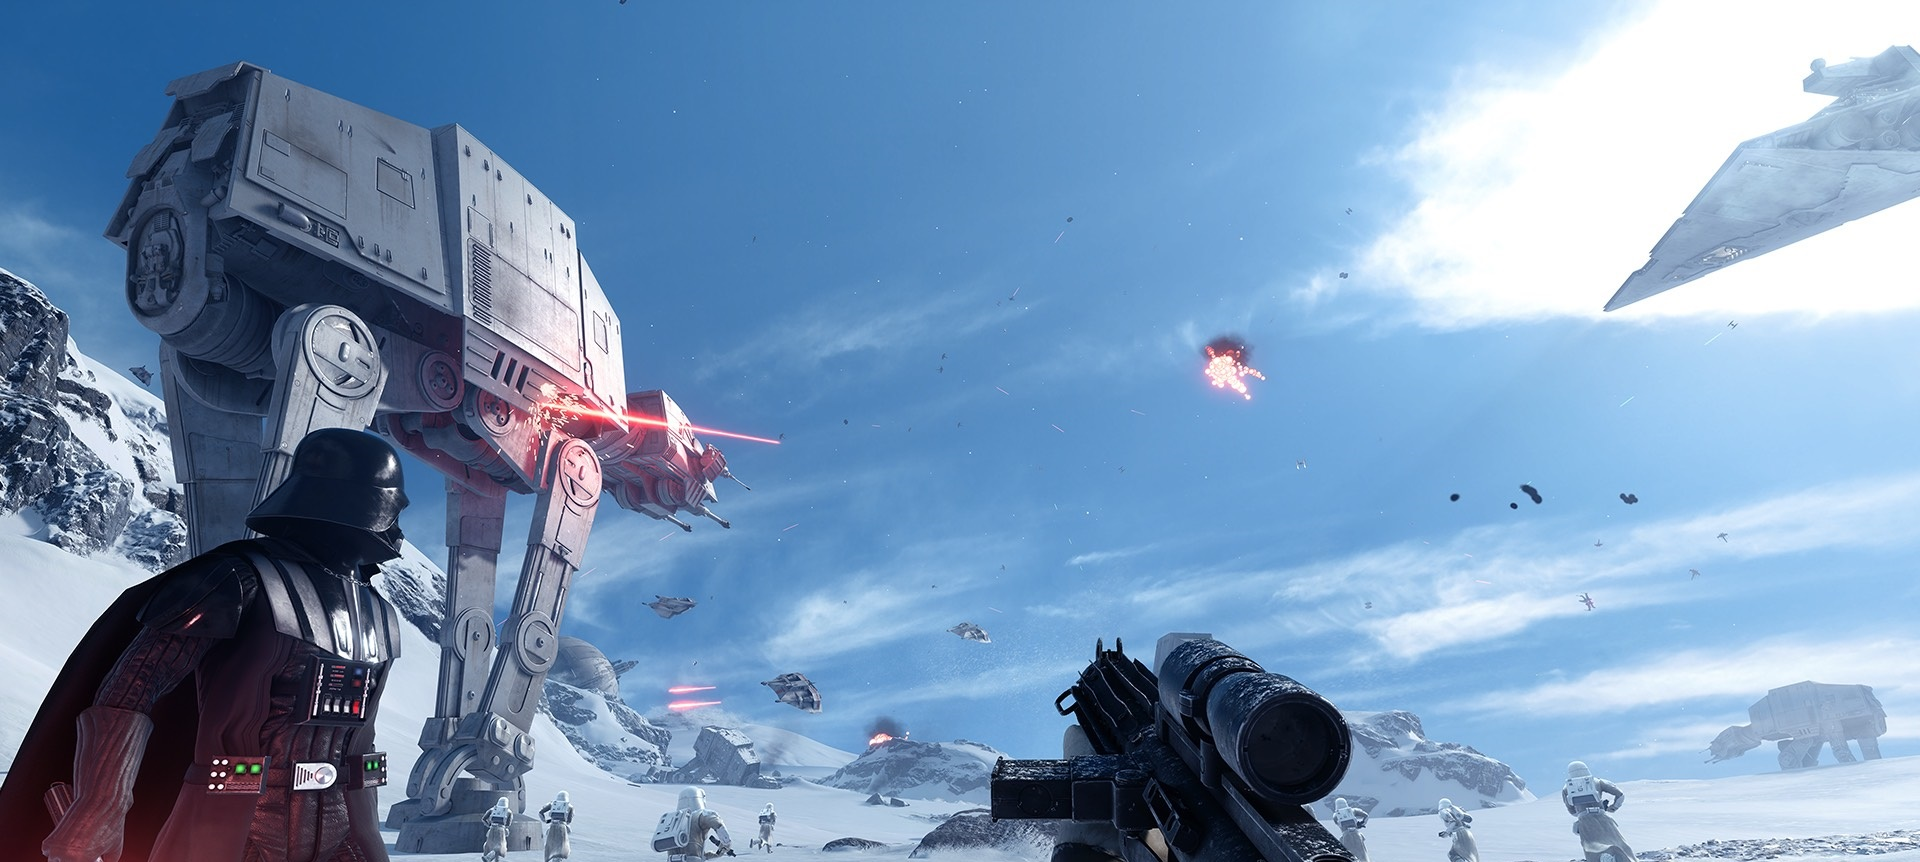 Probamos la Beta del Star Wars: Battlefront